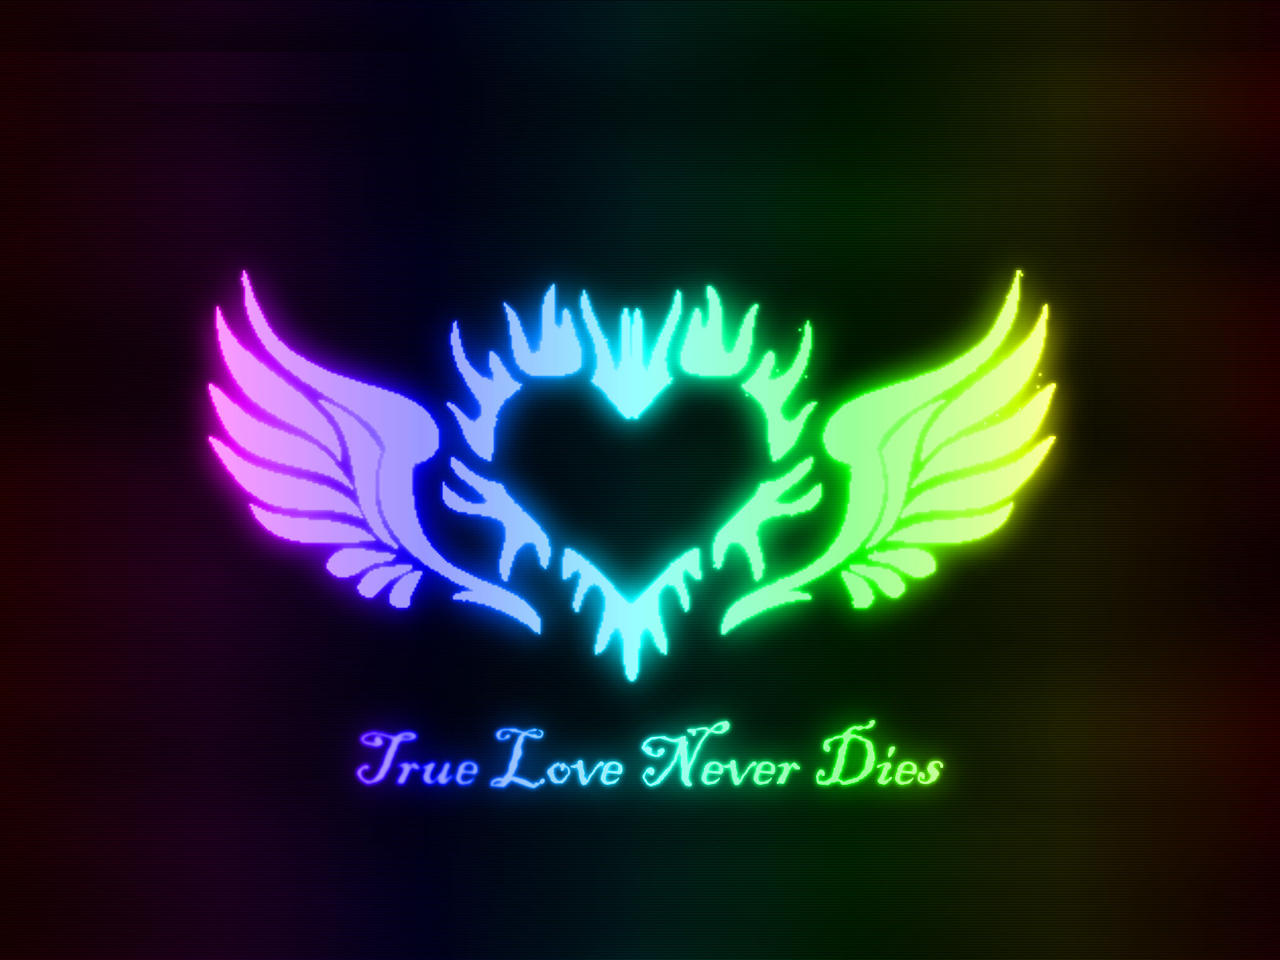 True Love Never End Wallpaper : True Love Never Dies wallpaper by vee18551 on DeviantArt